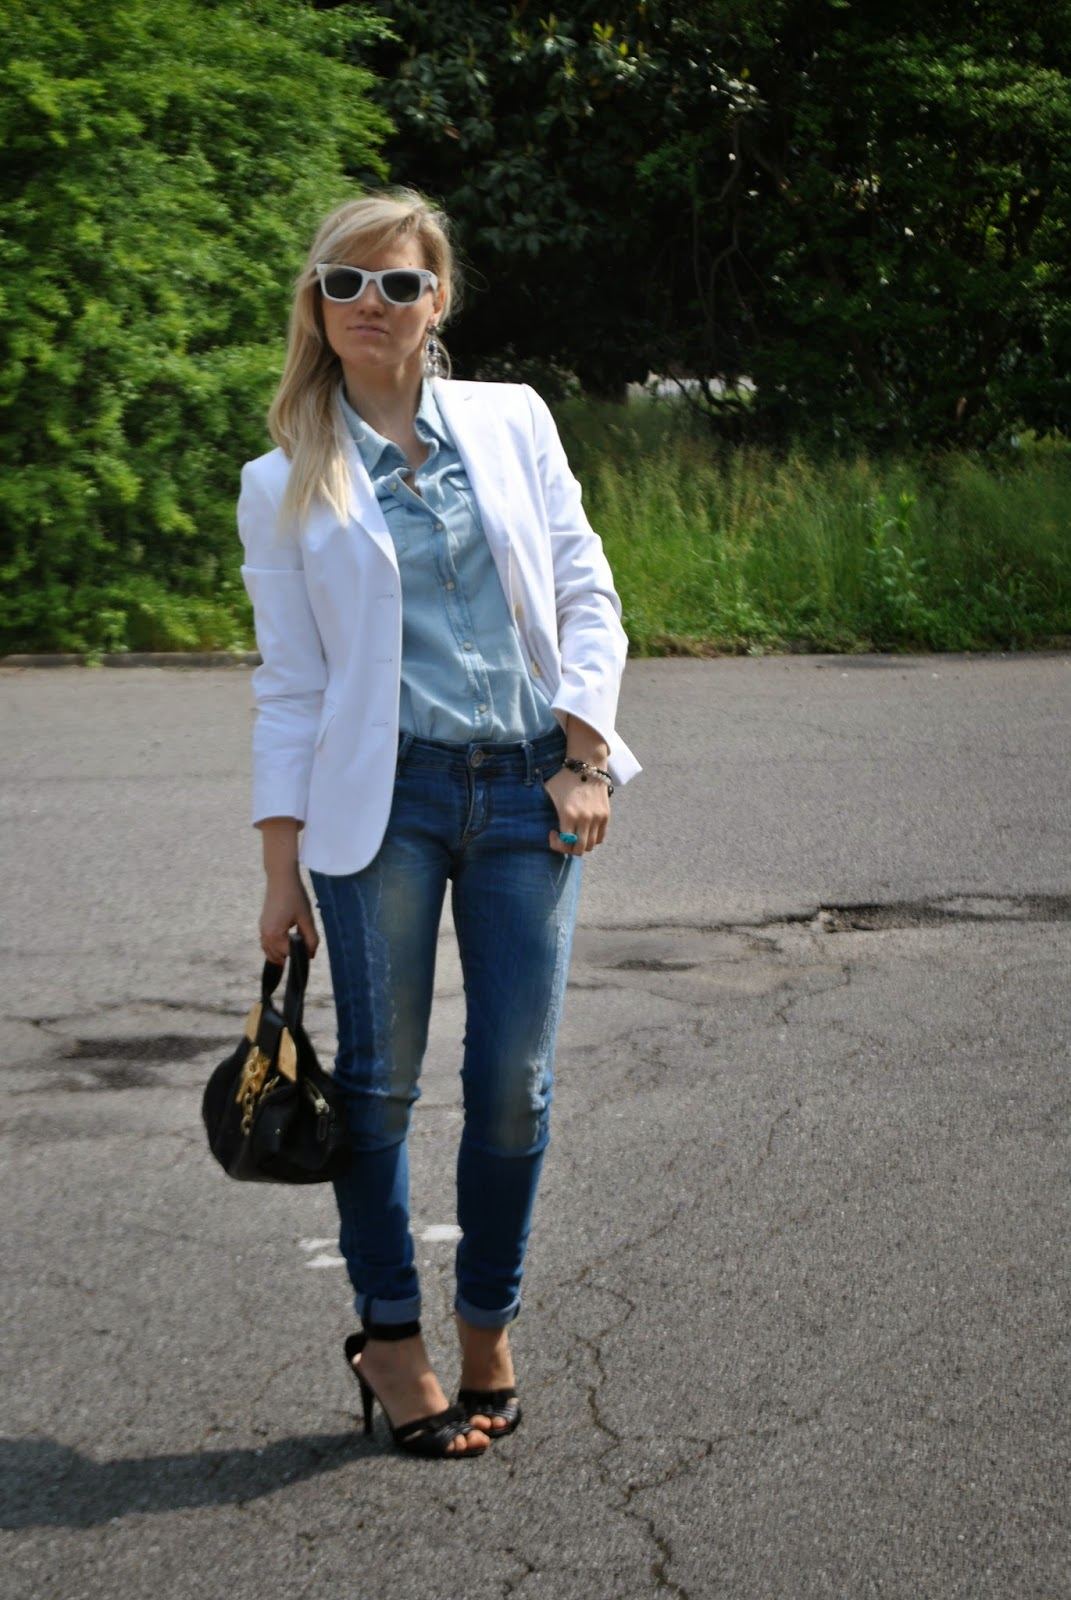 outfit blazer bianco abbinamenti blazer bianco come abbinare il blazer bianco mariafelicia magno colorblock by felym mariafelicia magno fashion blogger outfit primaverili donna outfit maggio 2015 outfit jeans e tacchi abbinamenti jeans e tacchi come abbinare jeans e tacchi fashion blog italiani blog di moda italiani milano fashion bloggers italy spring outfits girls blondie blonde hairs blonde girls